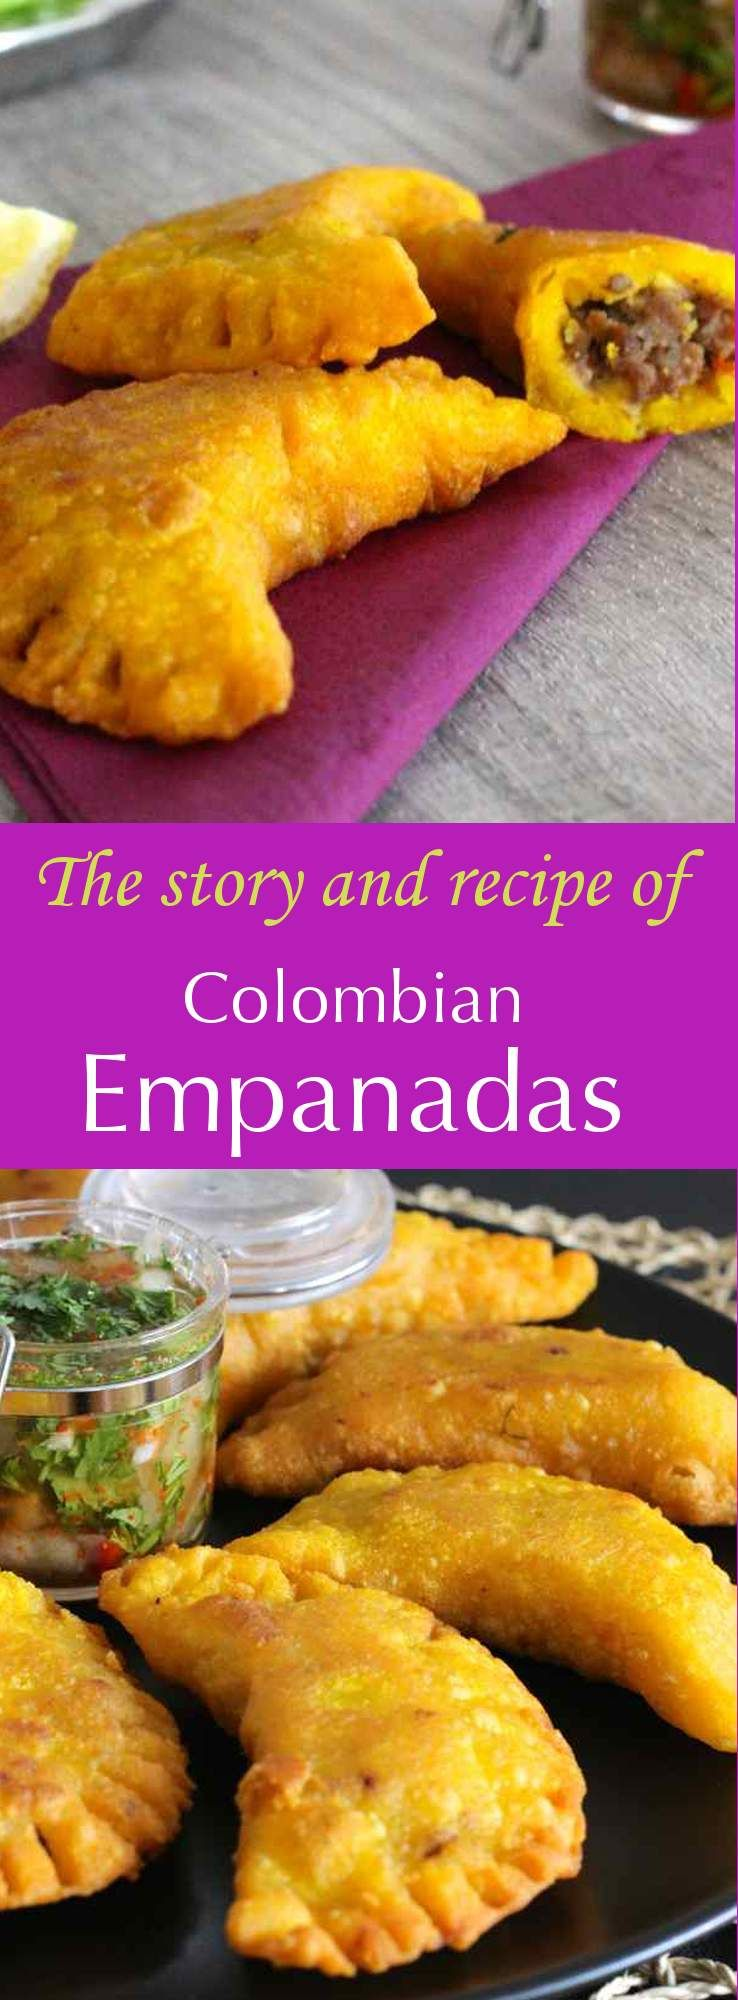 Empanadas are turnovers filled with spanish and south american empanadas are turnovers filled with spanish and south american origins that are stuffed differently in different countries and regions forumfinder Images